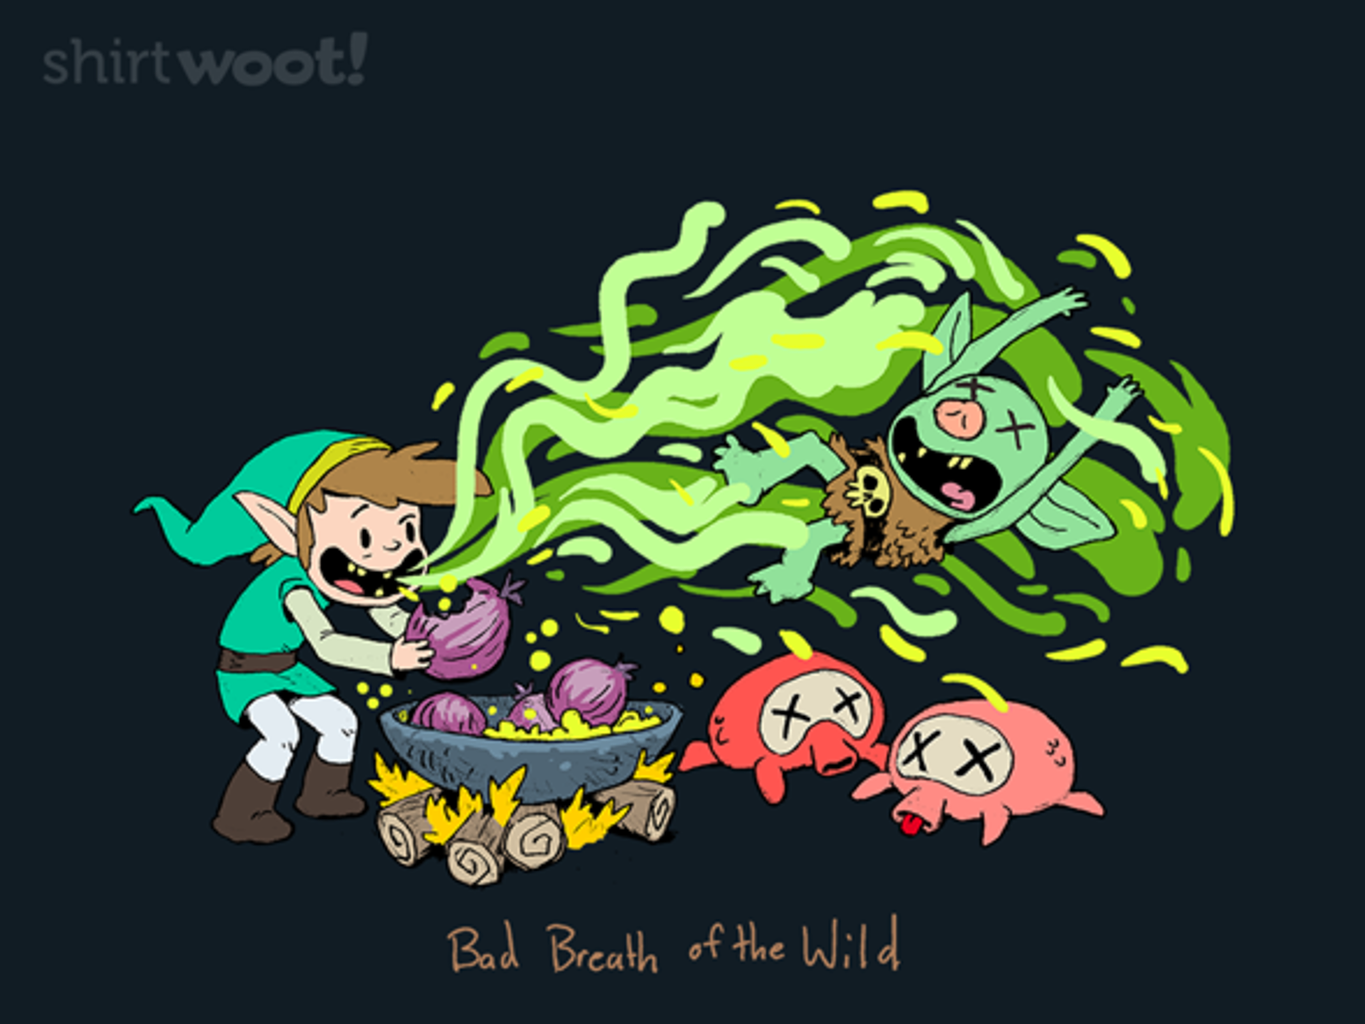 Woot!: Bad Breath of the Wild